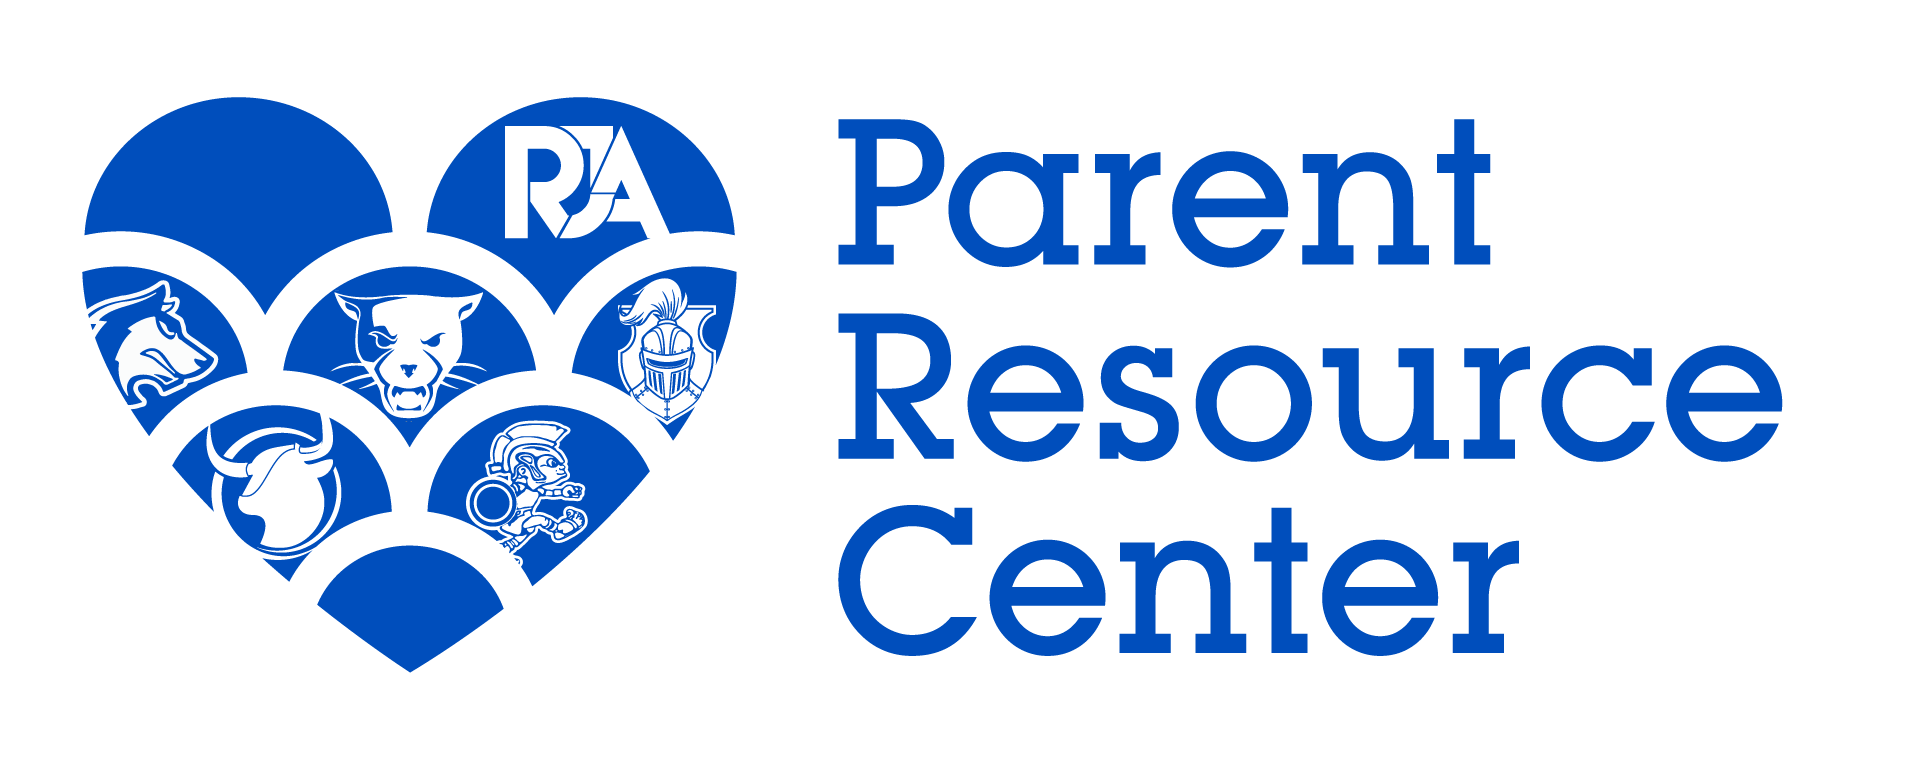 RJA Parent Resource Center logo in Journey school colors (blue). To the left is a hear with all the school logos inside and to the right reads Parent Resource Center.